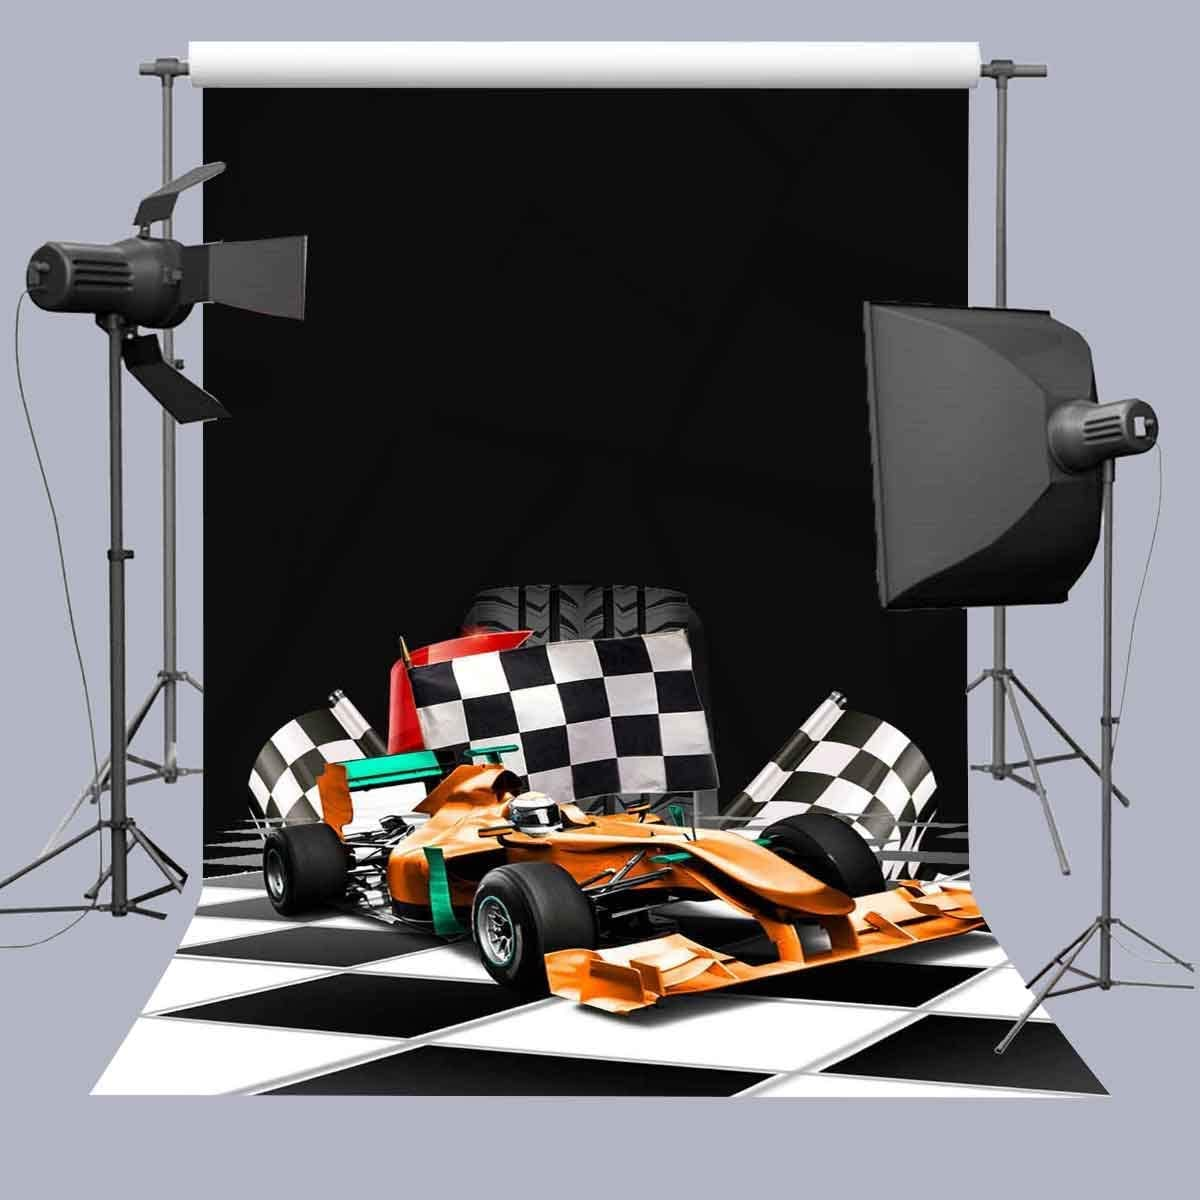 8x10ft Background Racing Car Photography Backdrop Studio Photo Props GEFU1209